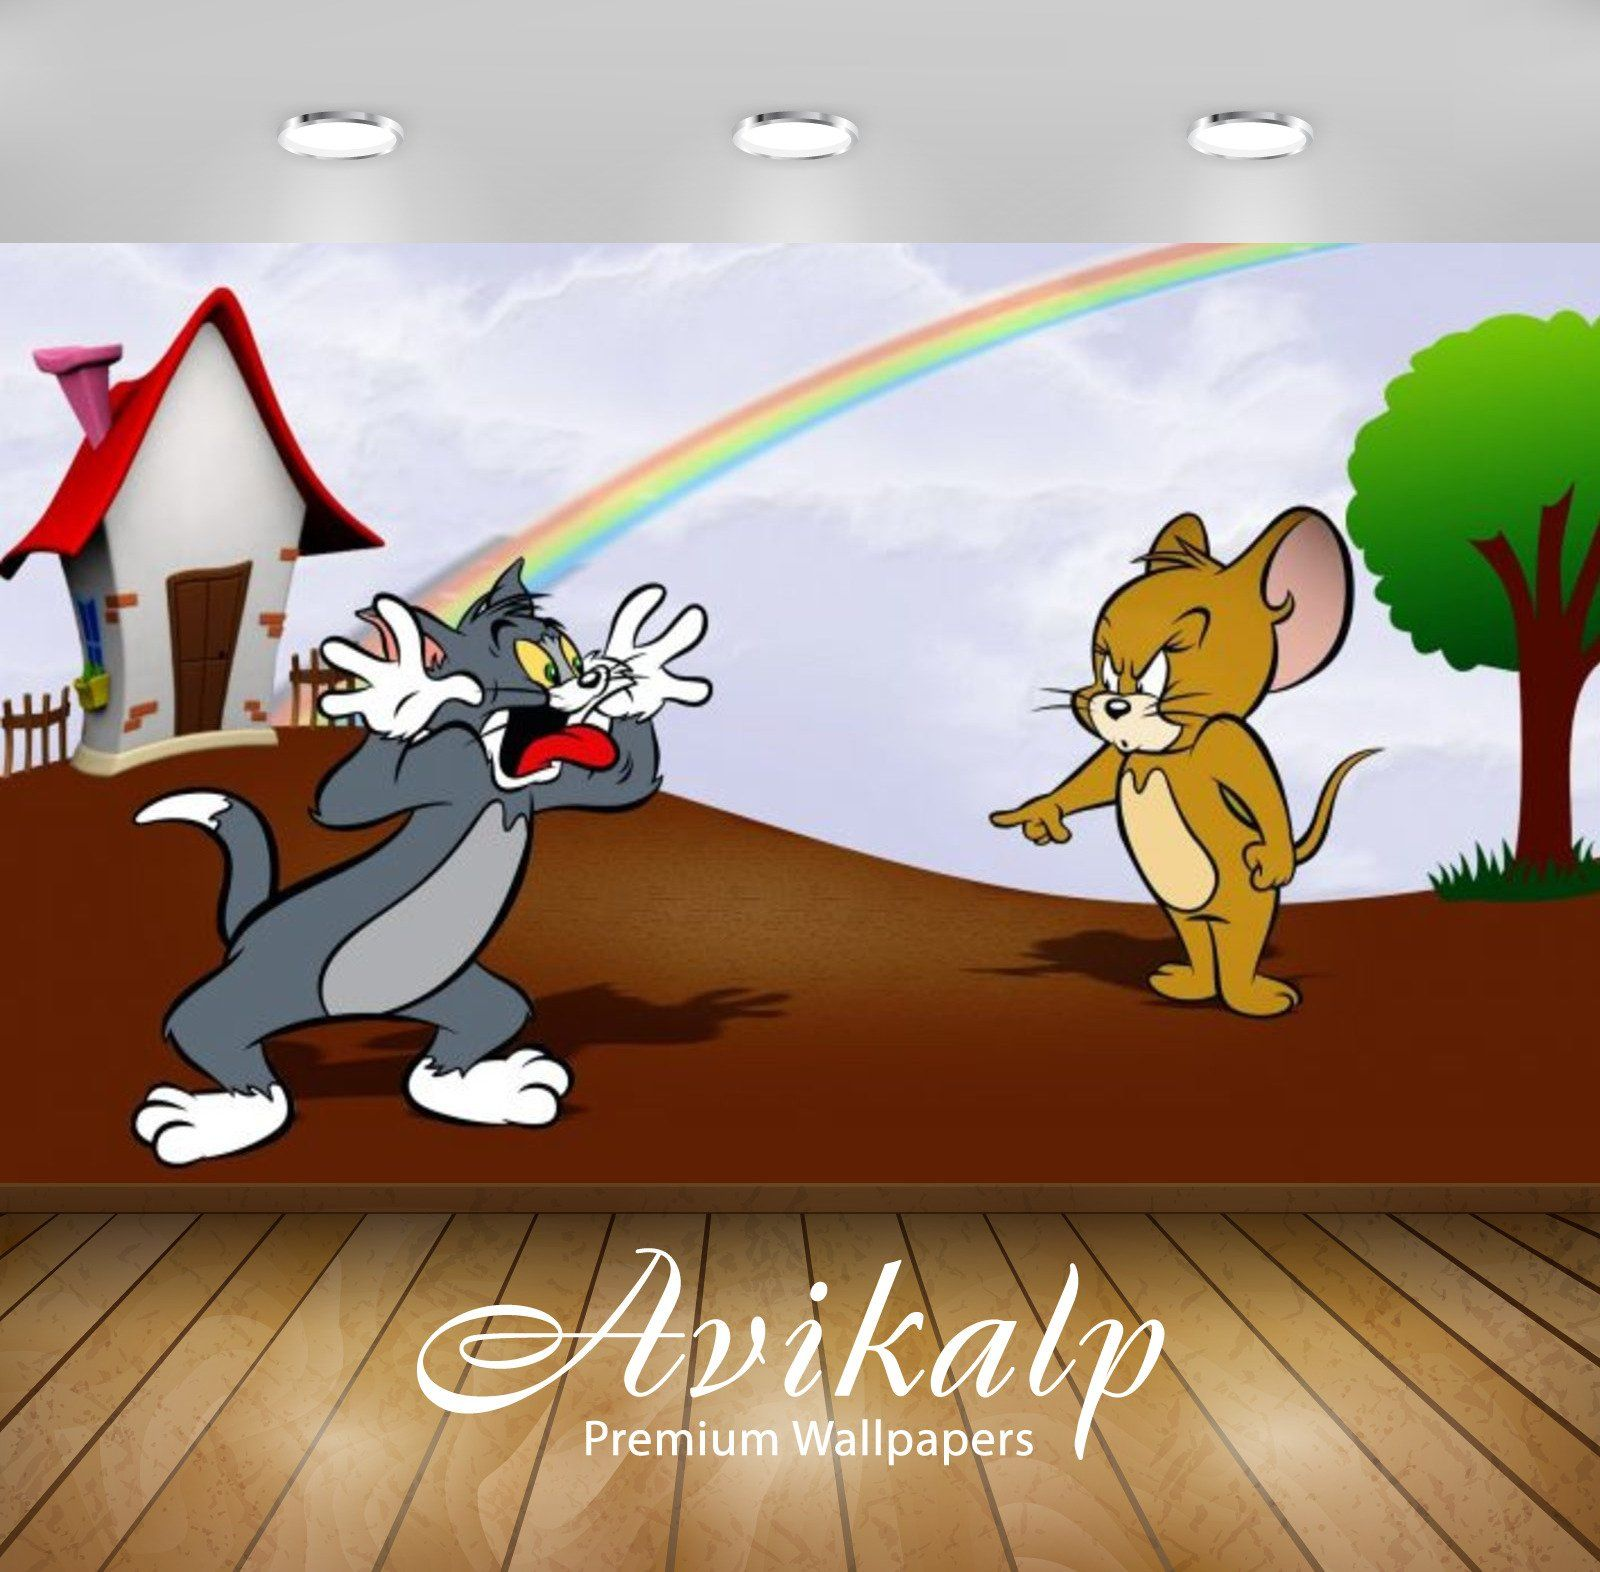 Avikalp Exclusive Awi2254 Tom And Jerry Cartoon Movie Full Hd Wallpapers For Living Room Hall Kids 3d Wallpaper Cartoon 3d Wallpaper Painting Kids Room Wallpaper